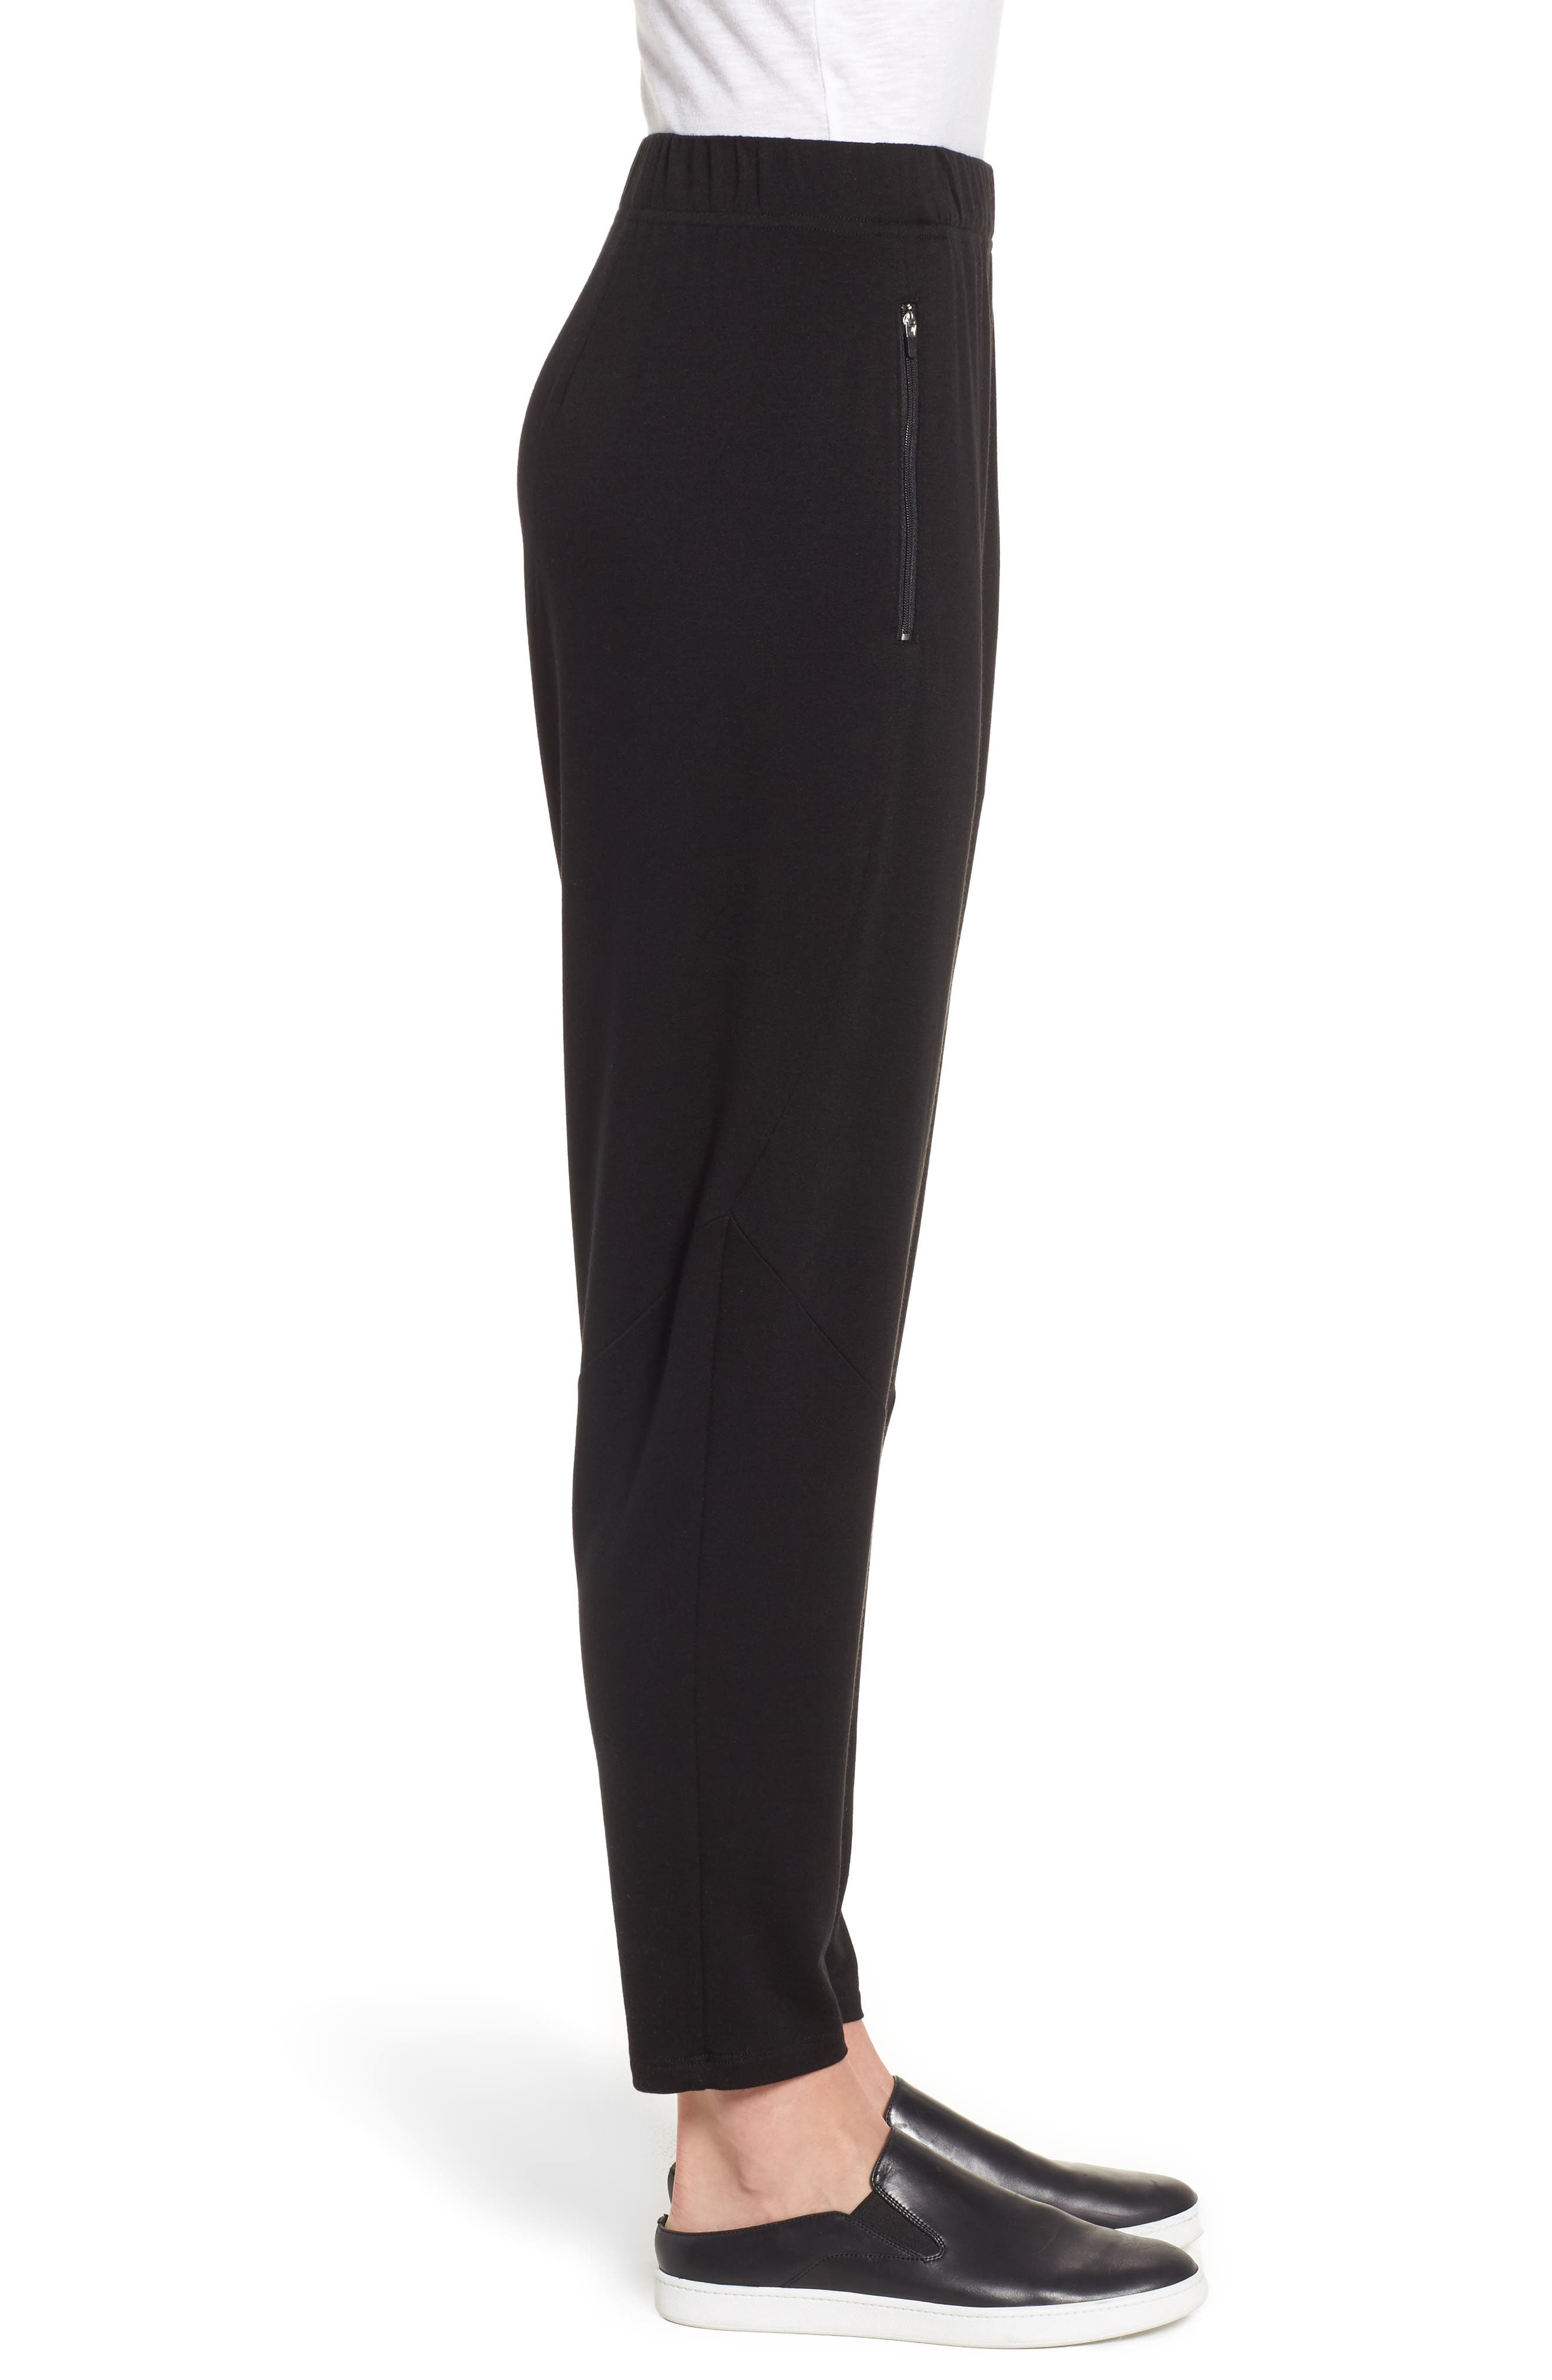 Slouchy Stretch Tencel<sup>®</sup> Lyocell Tapered Pants,                             Alternate thumbnail 3, color,                             001